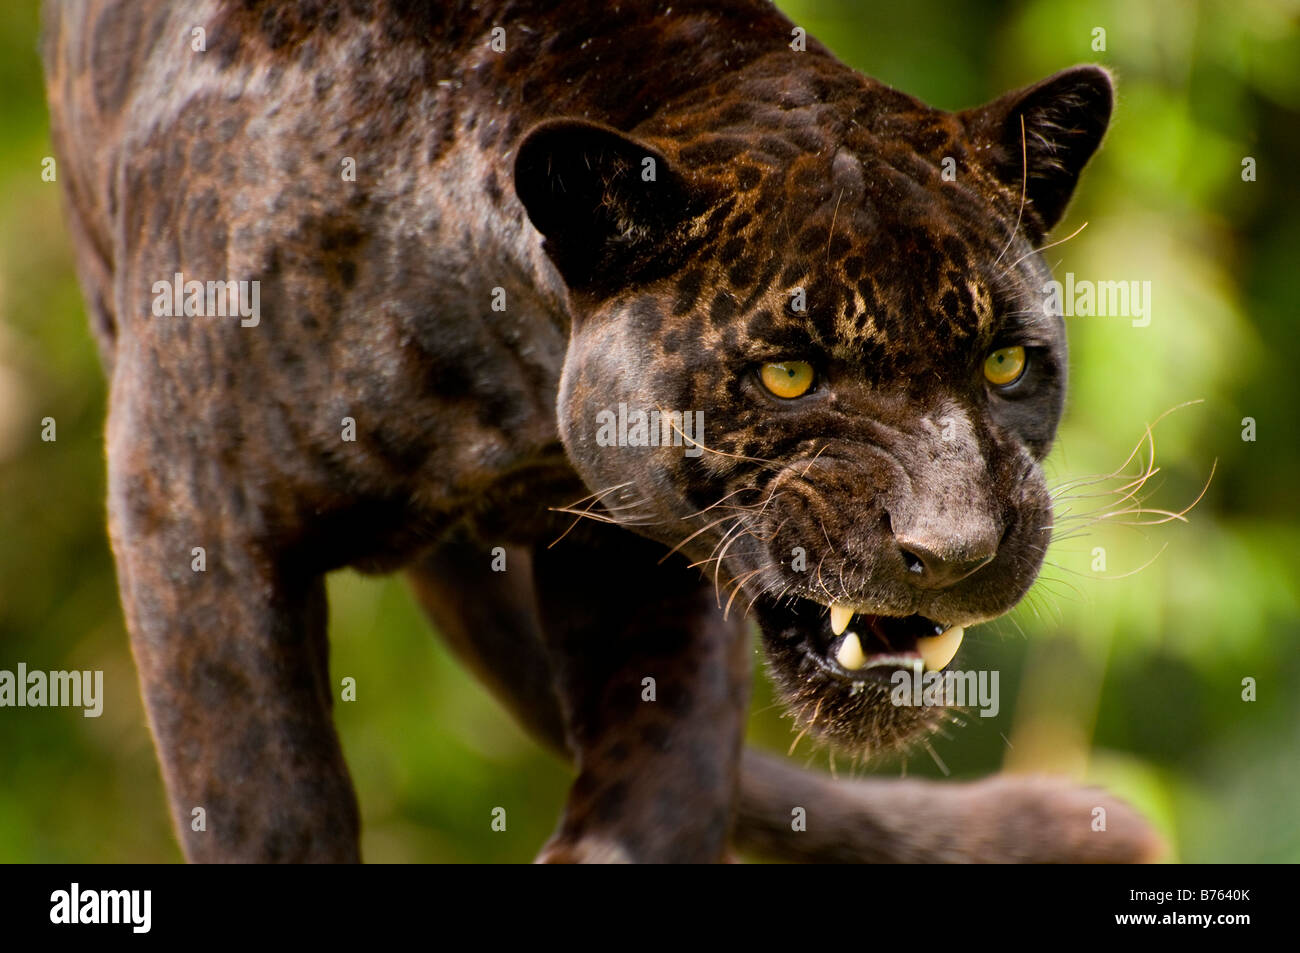 Panther or black jaguar Panthera onca - Stock Image